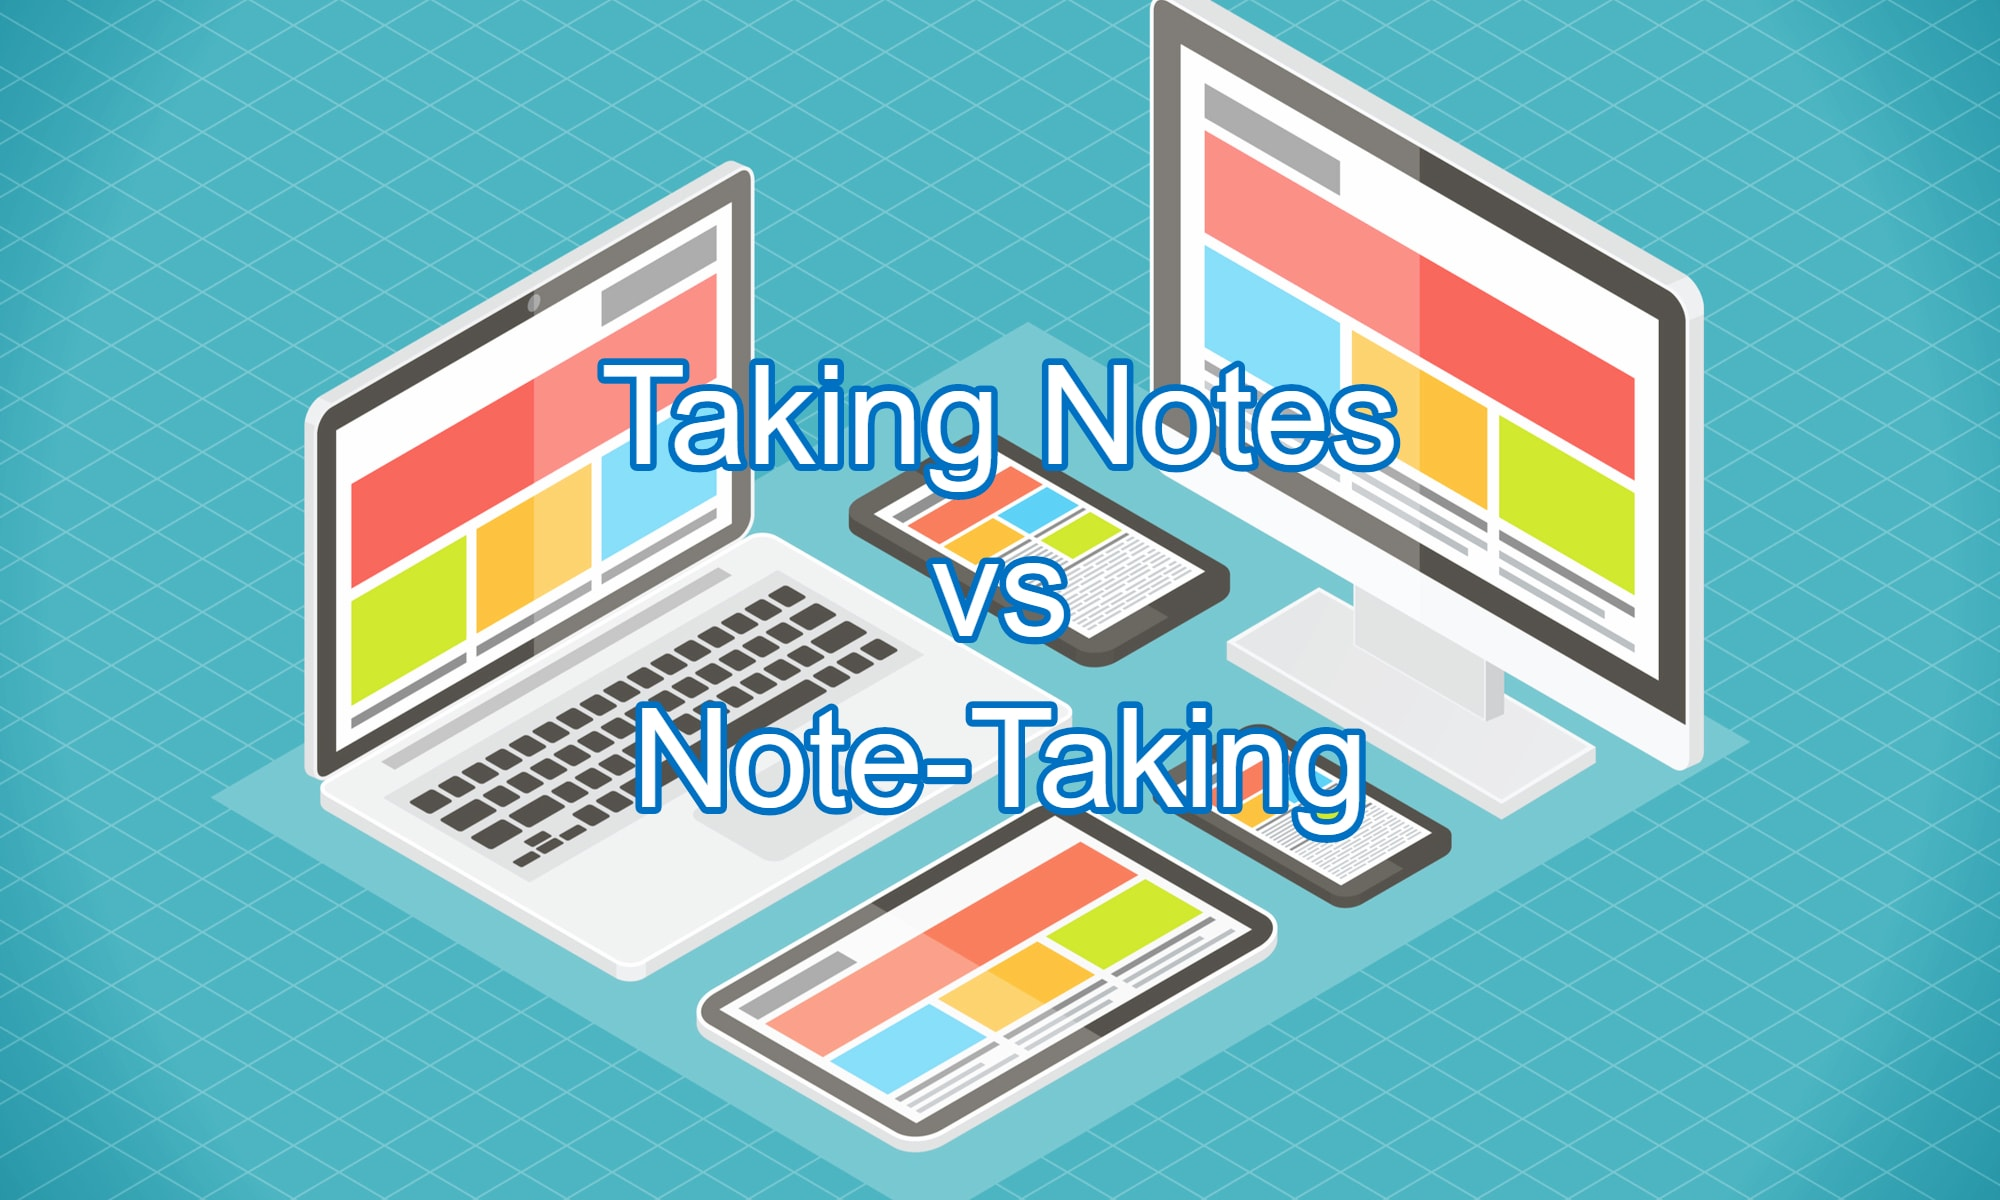 Devices - Taking Notes vs Note-Taking